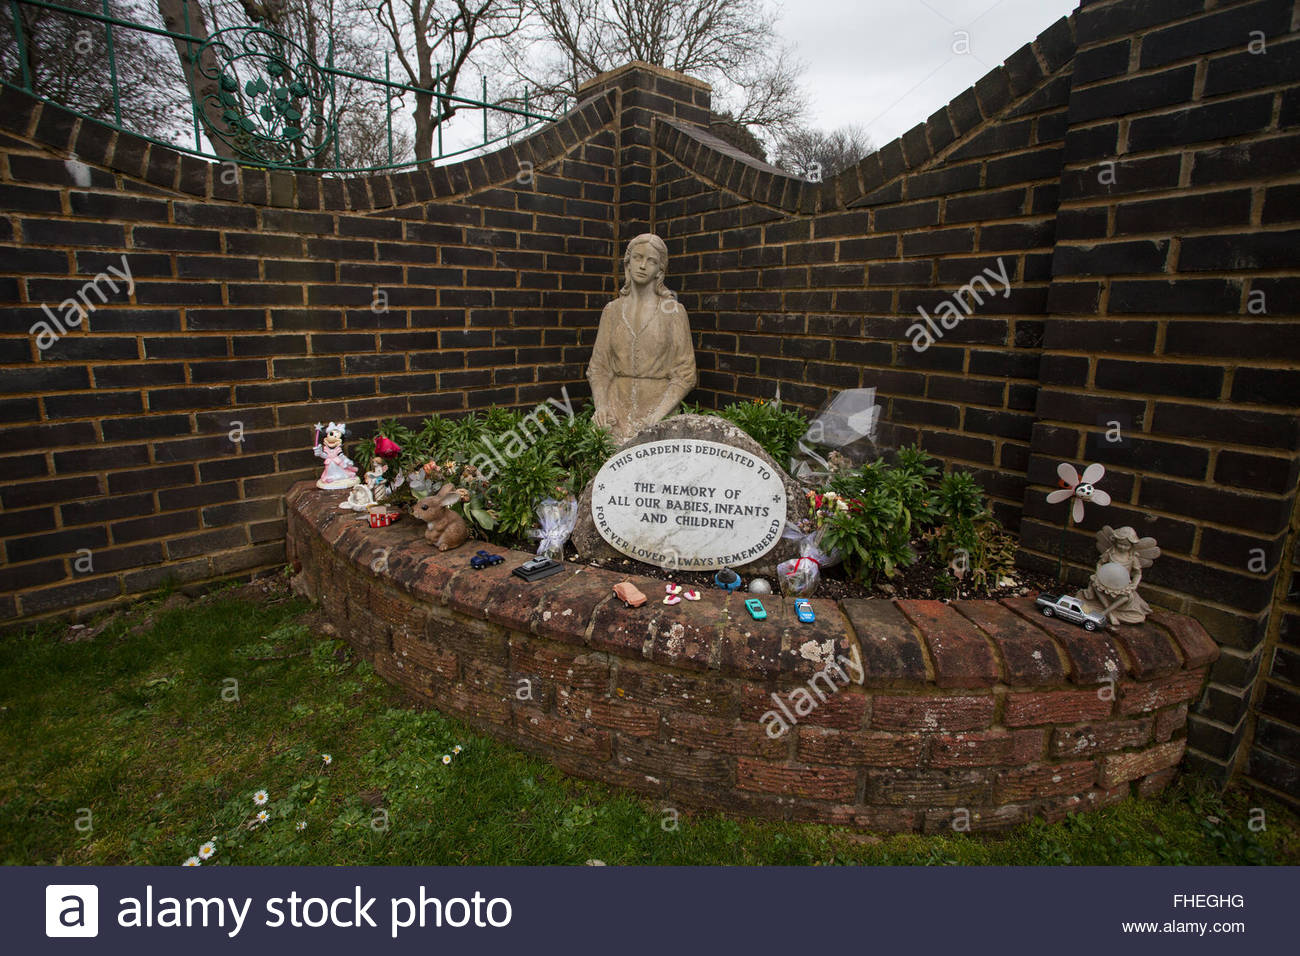 Statue in Garden in Memory of All Our Babies, Infants and Children ...